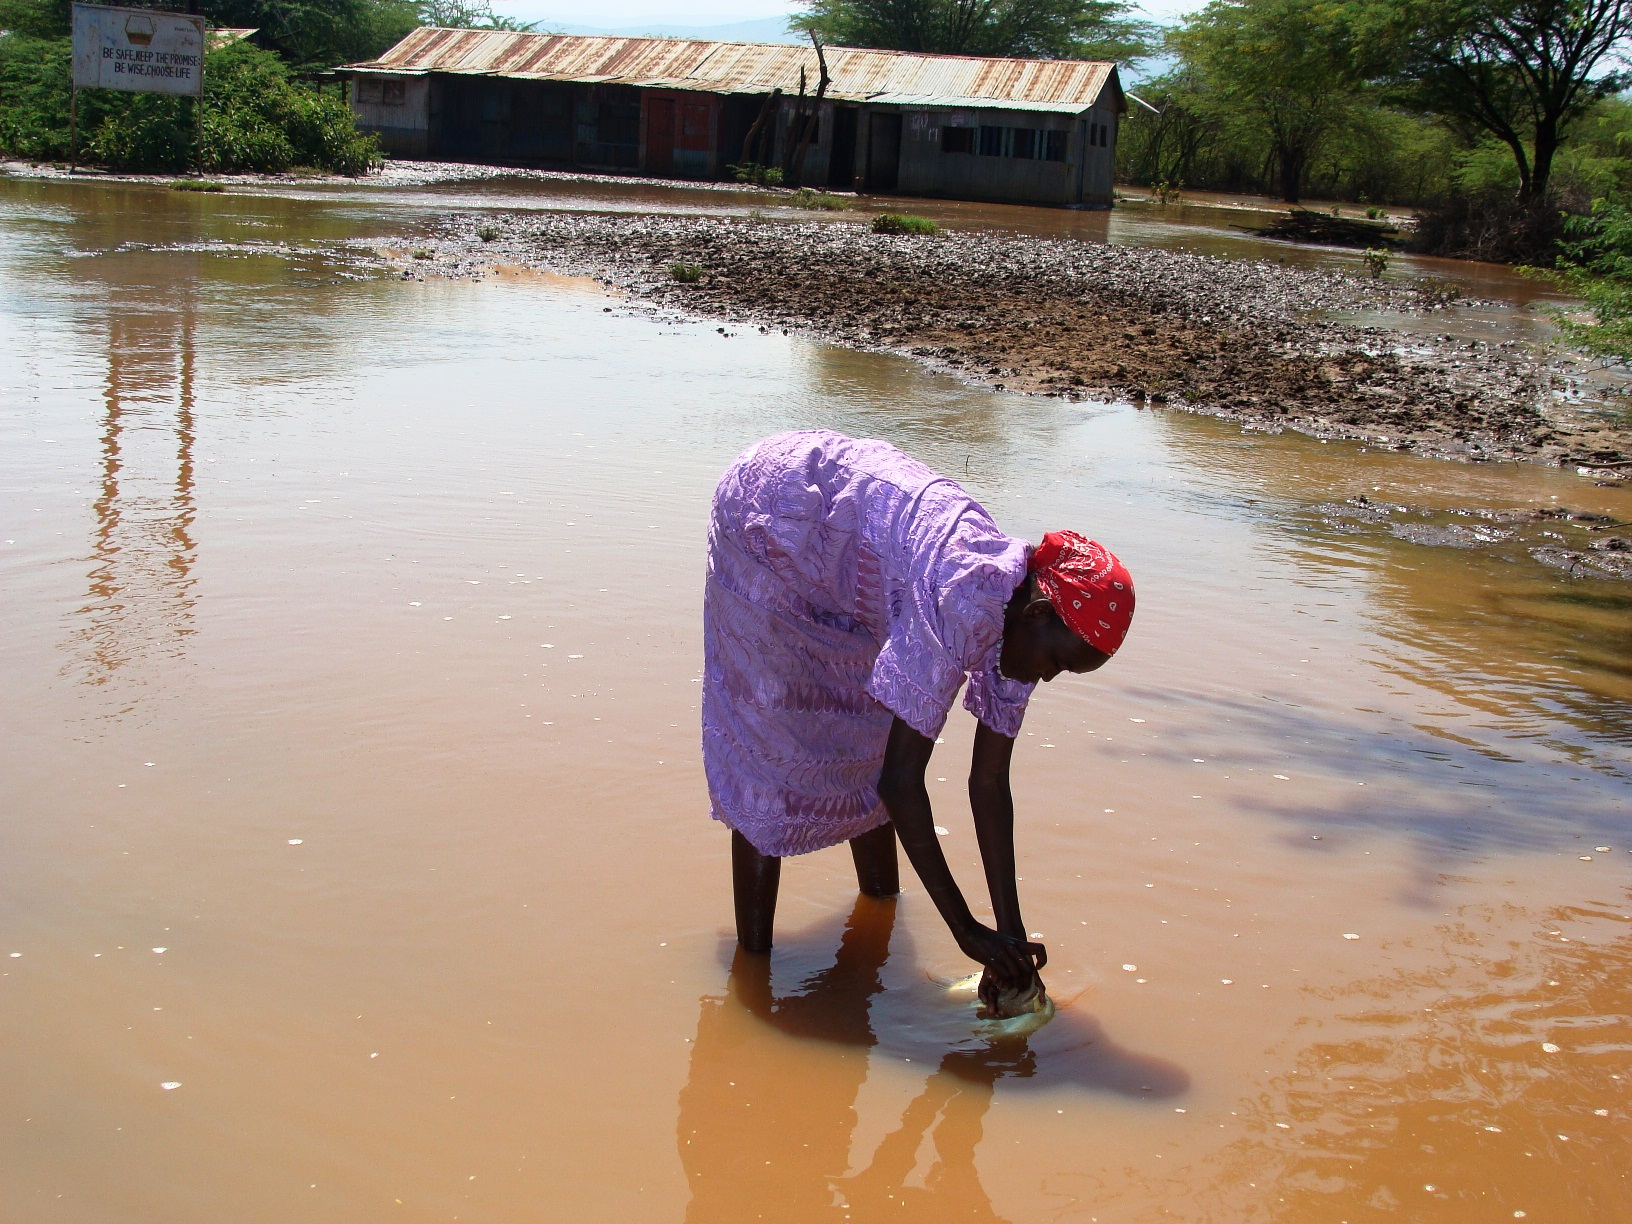 Thousands of people have been displaced in parts of Kenya's Rift Valley Province as floodwaters continue to submerge houses and schools and destroy crops. The floods have contaminated water sources